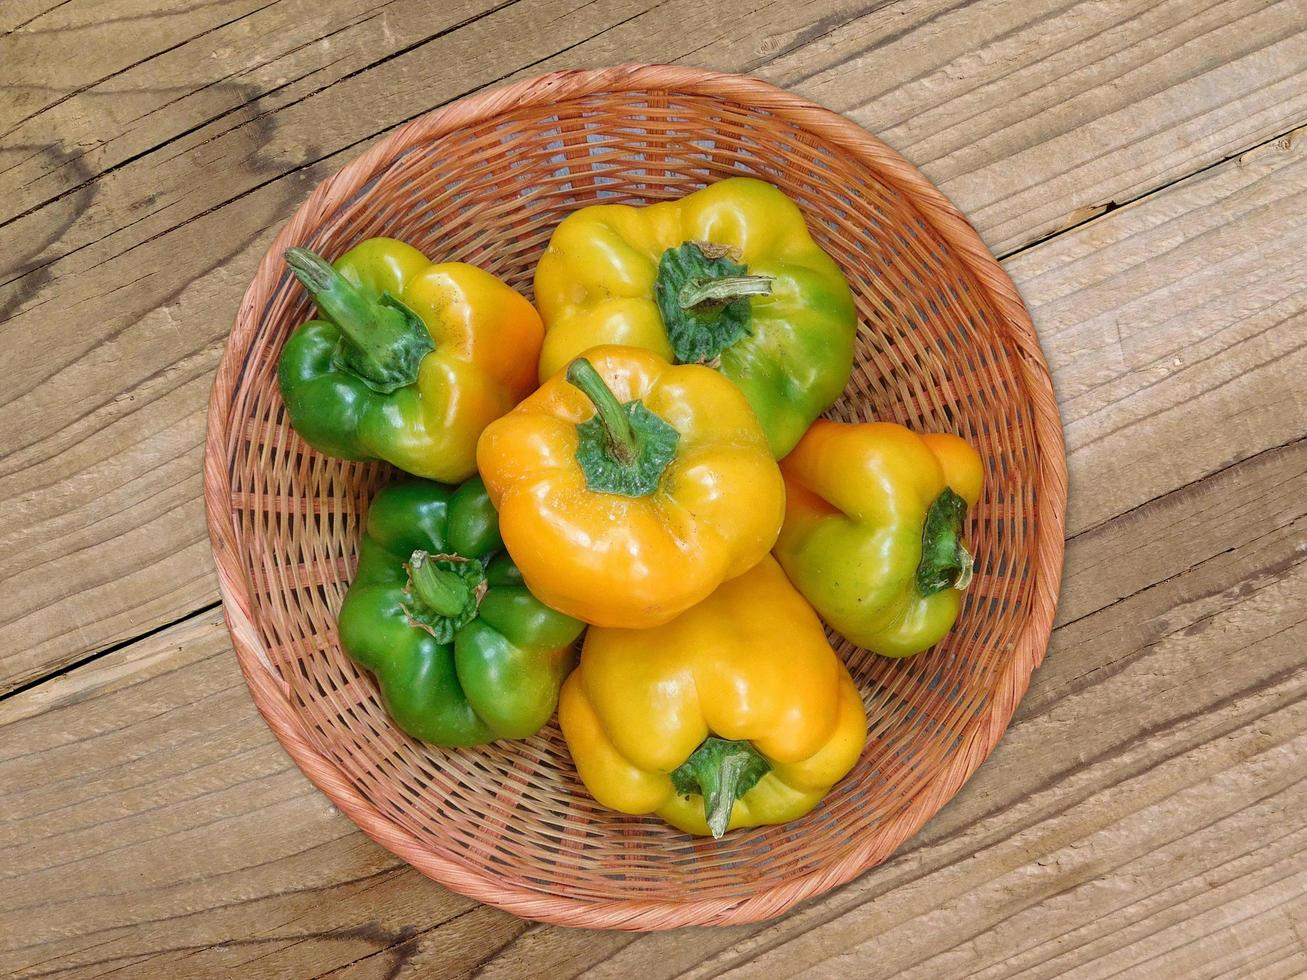 Yellow and green bell peppers in a wicker bowl on a wooden table background photo